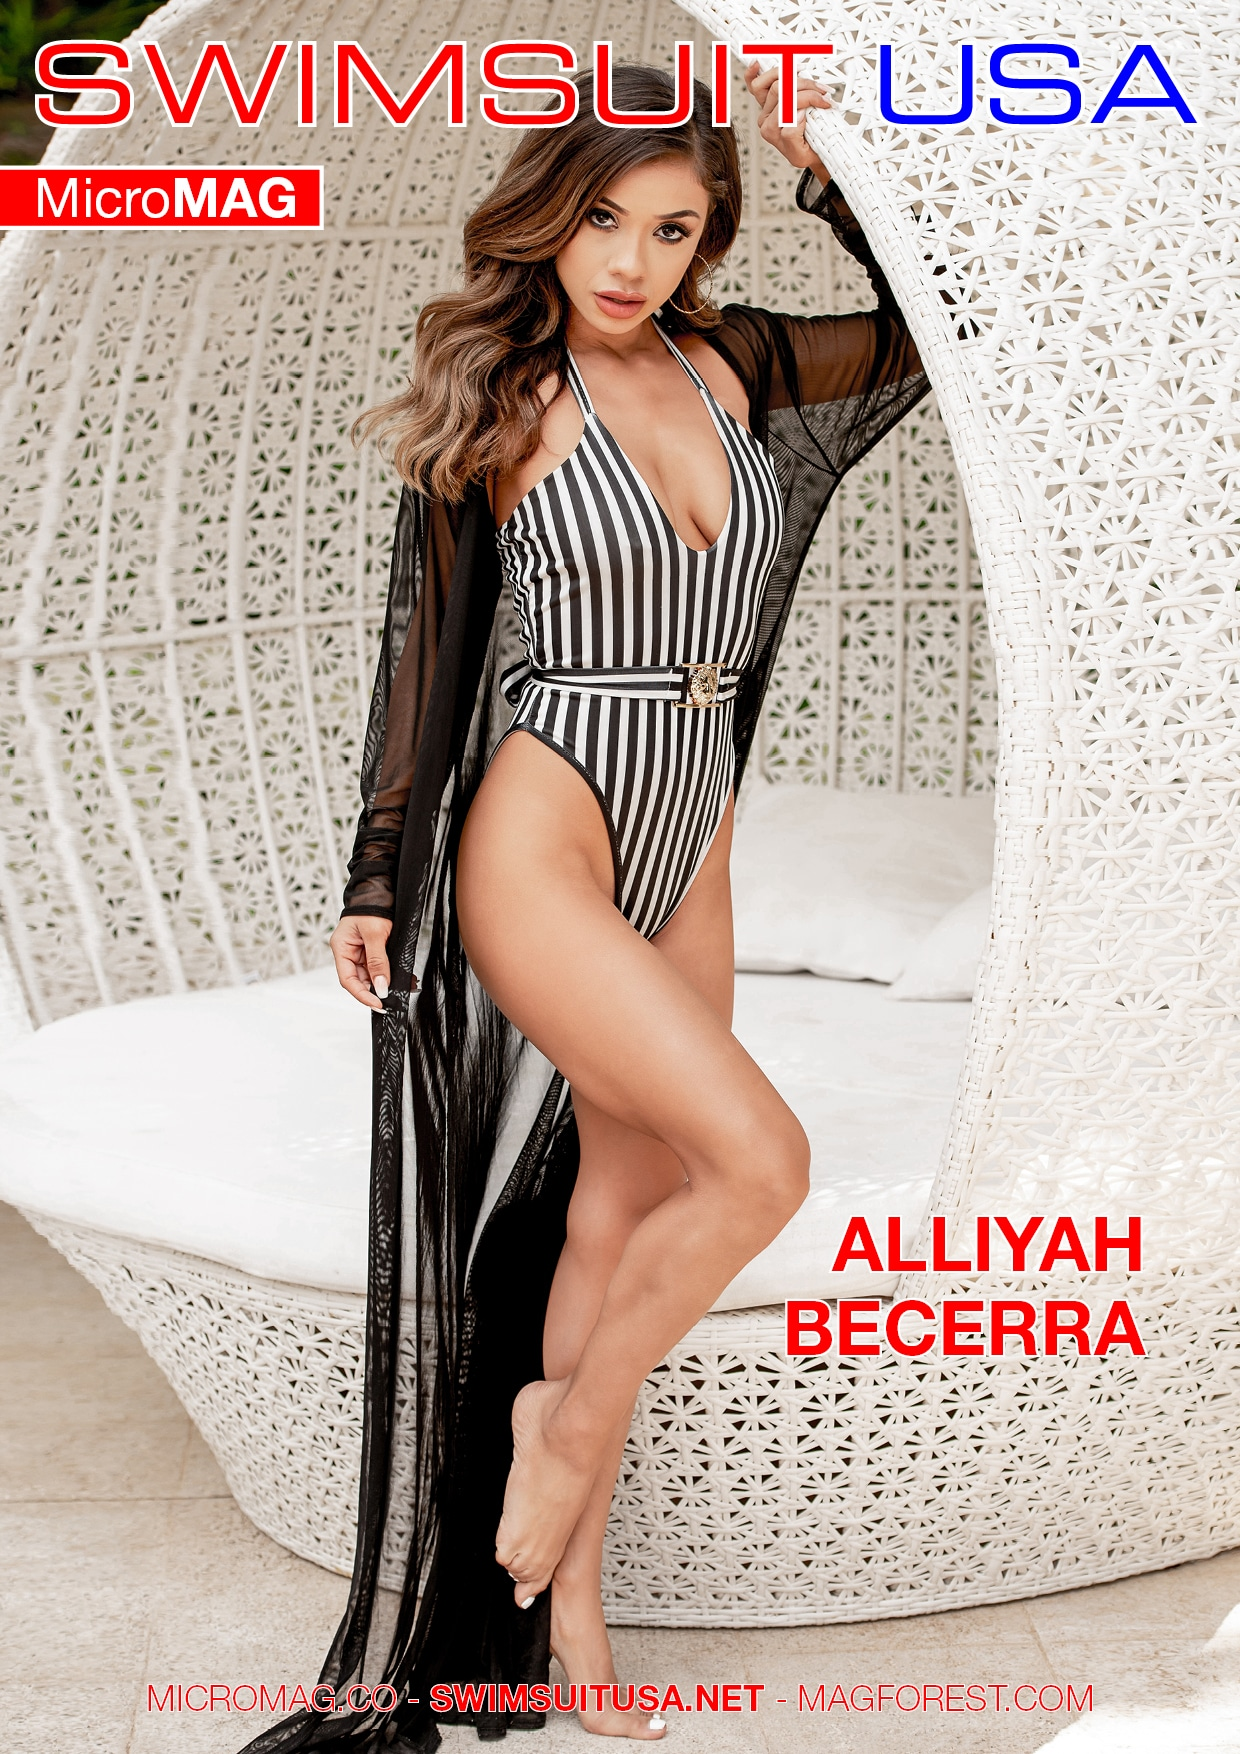 Swimsuit USA MicroMAG - Alliyah Becerra - Issue 5 1